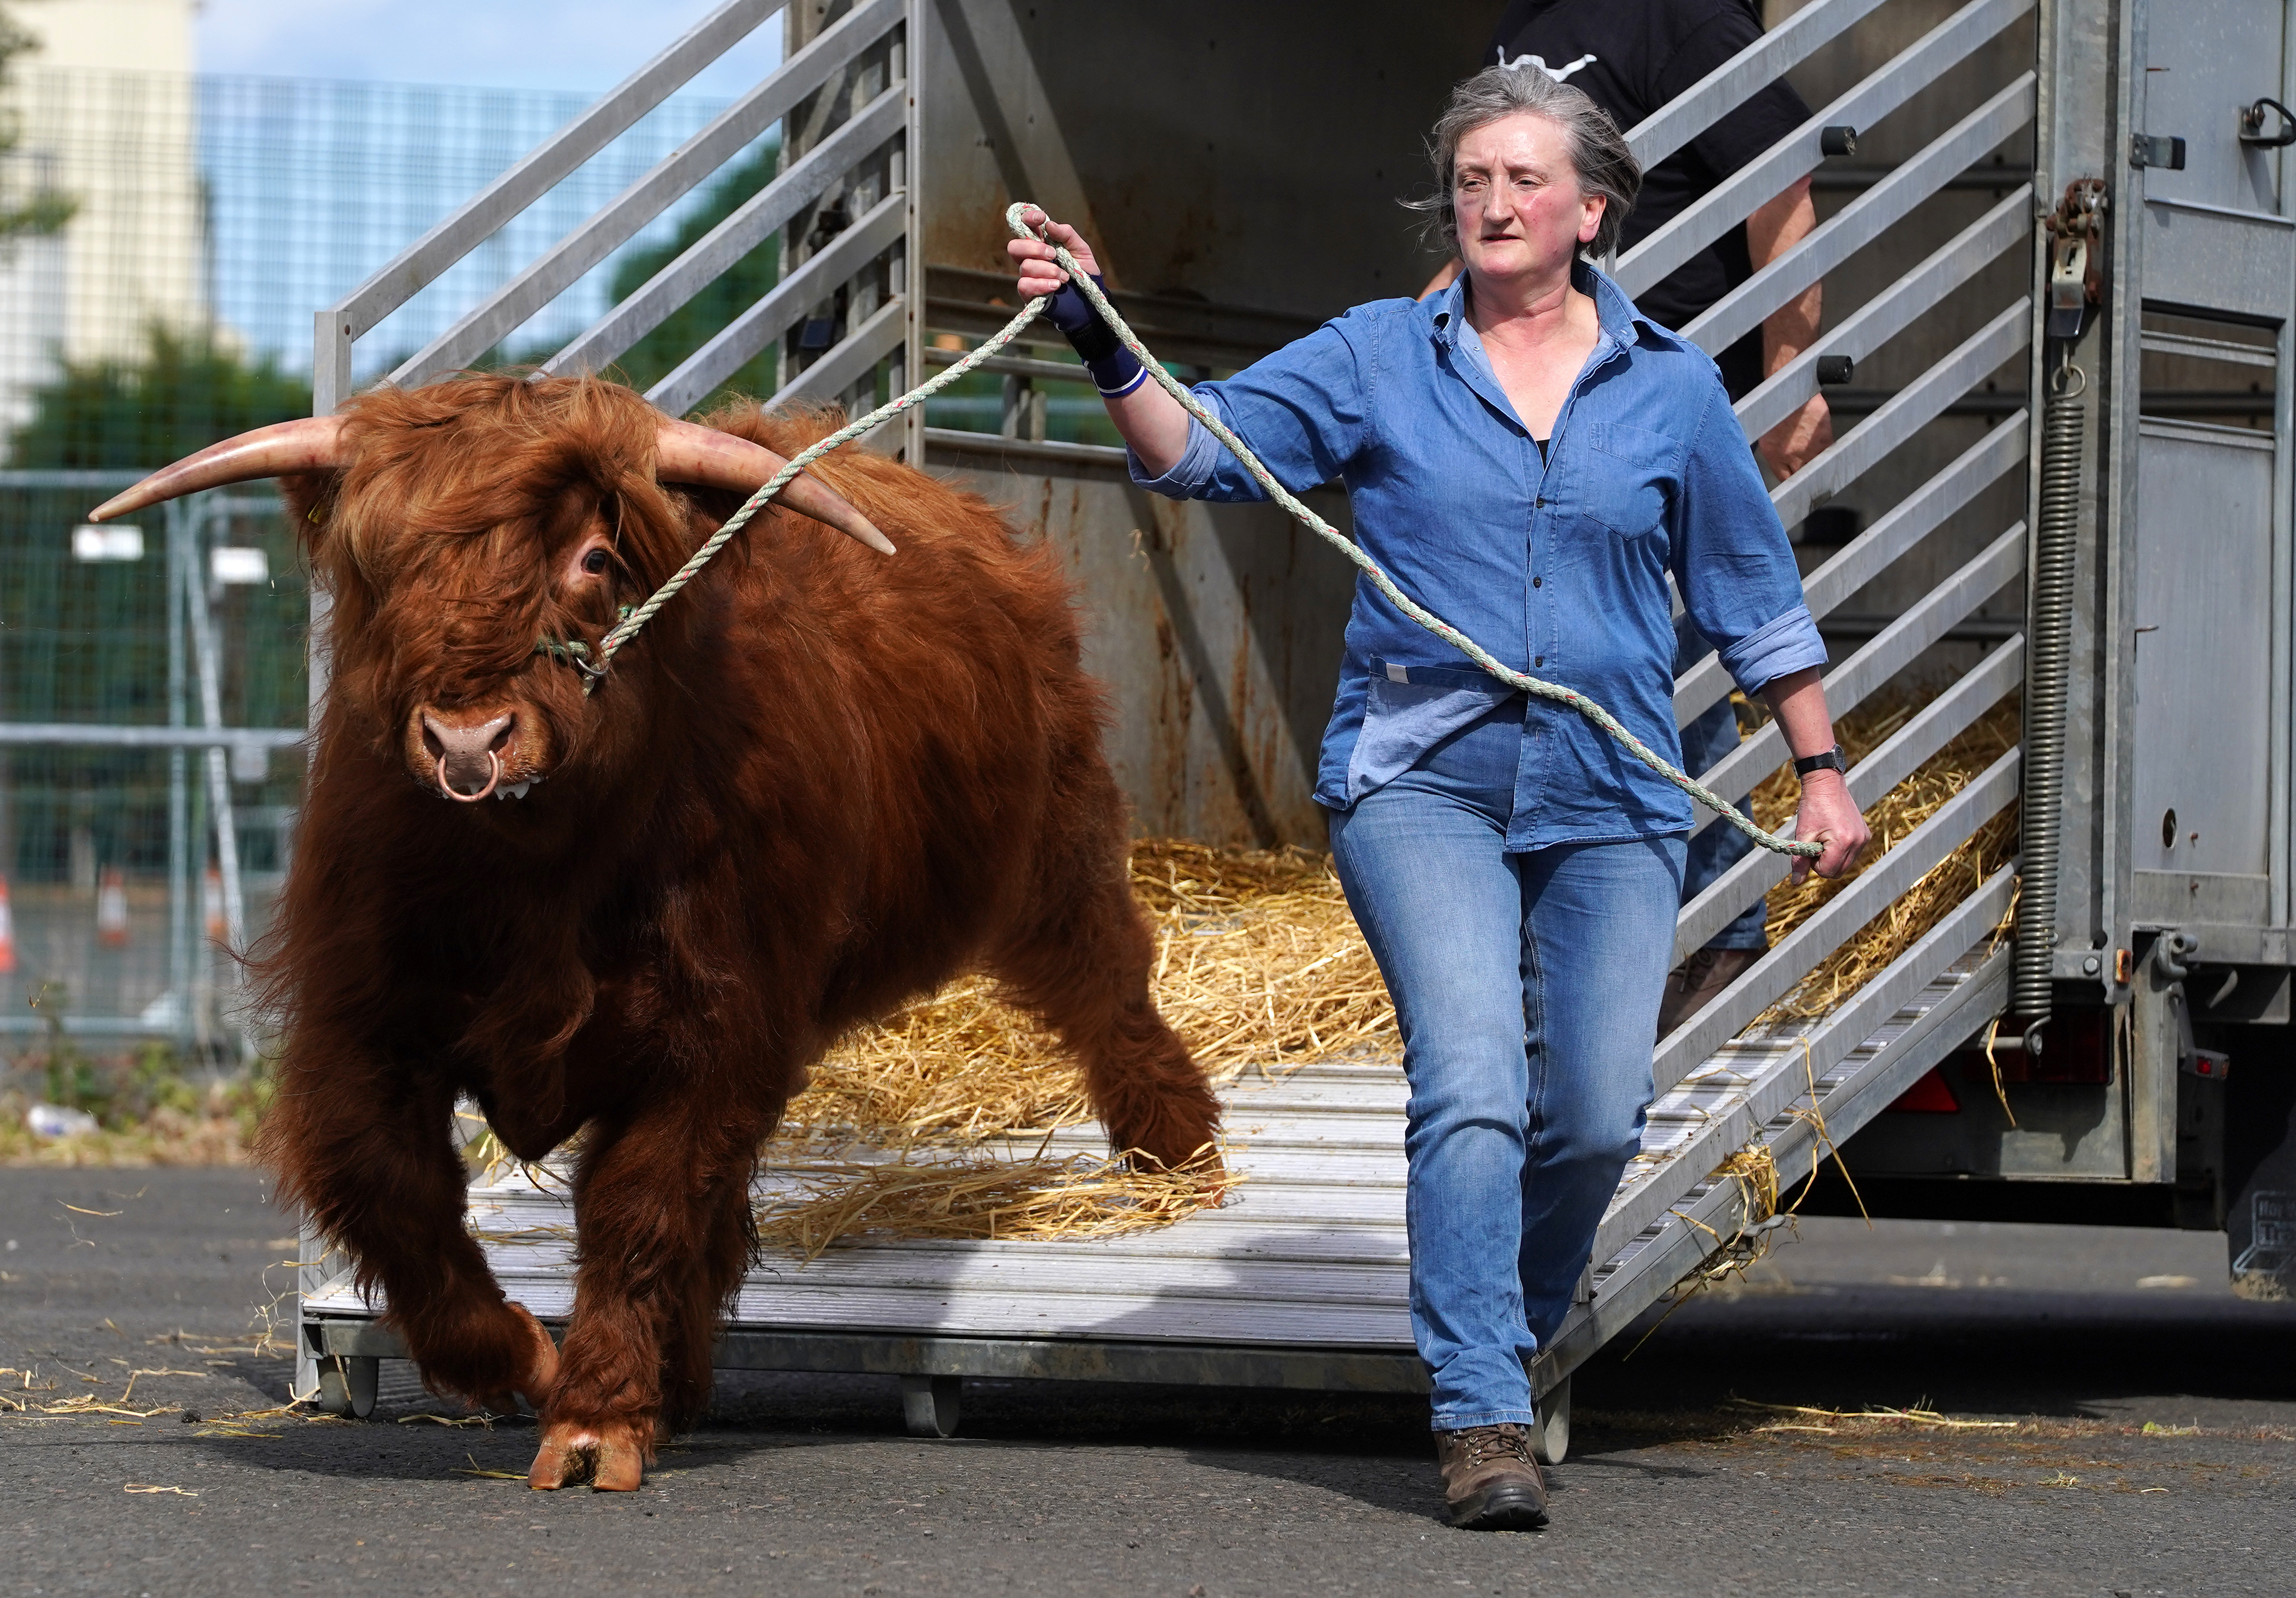 <p>Maureen MacArthur from Allanfearn farm near Inverness with her Highland Cattle as they arrive at the Royal Highland Show in Edinburgh. Due to the covid restrictions this years event which starts tomorrow is being held online. Picture date: Sunday June 13, 2021. (Photo by Andrew Milligan/PA Images via Getty Images)</p>